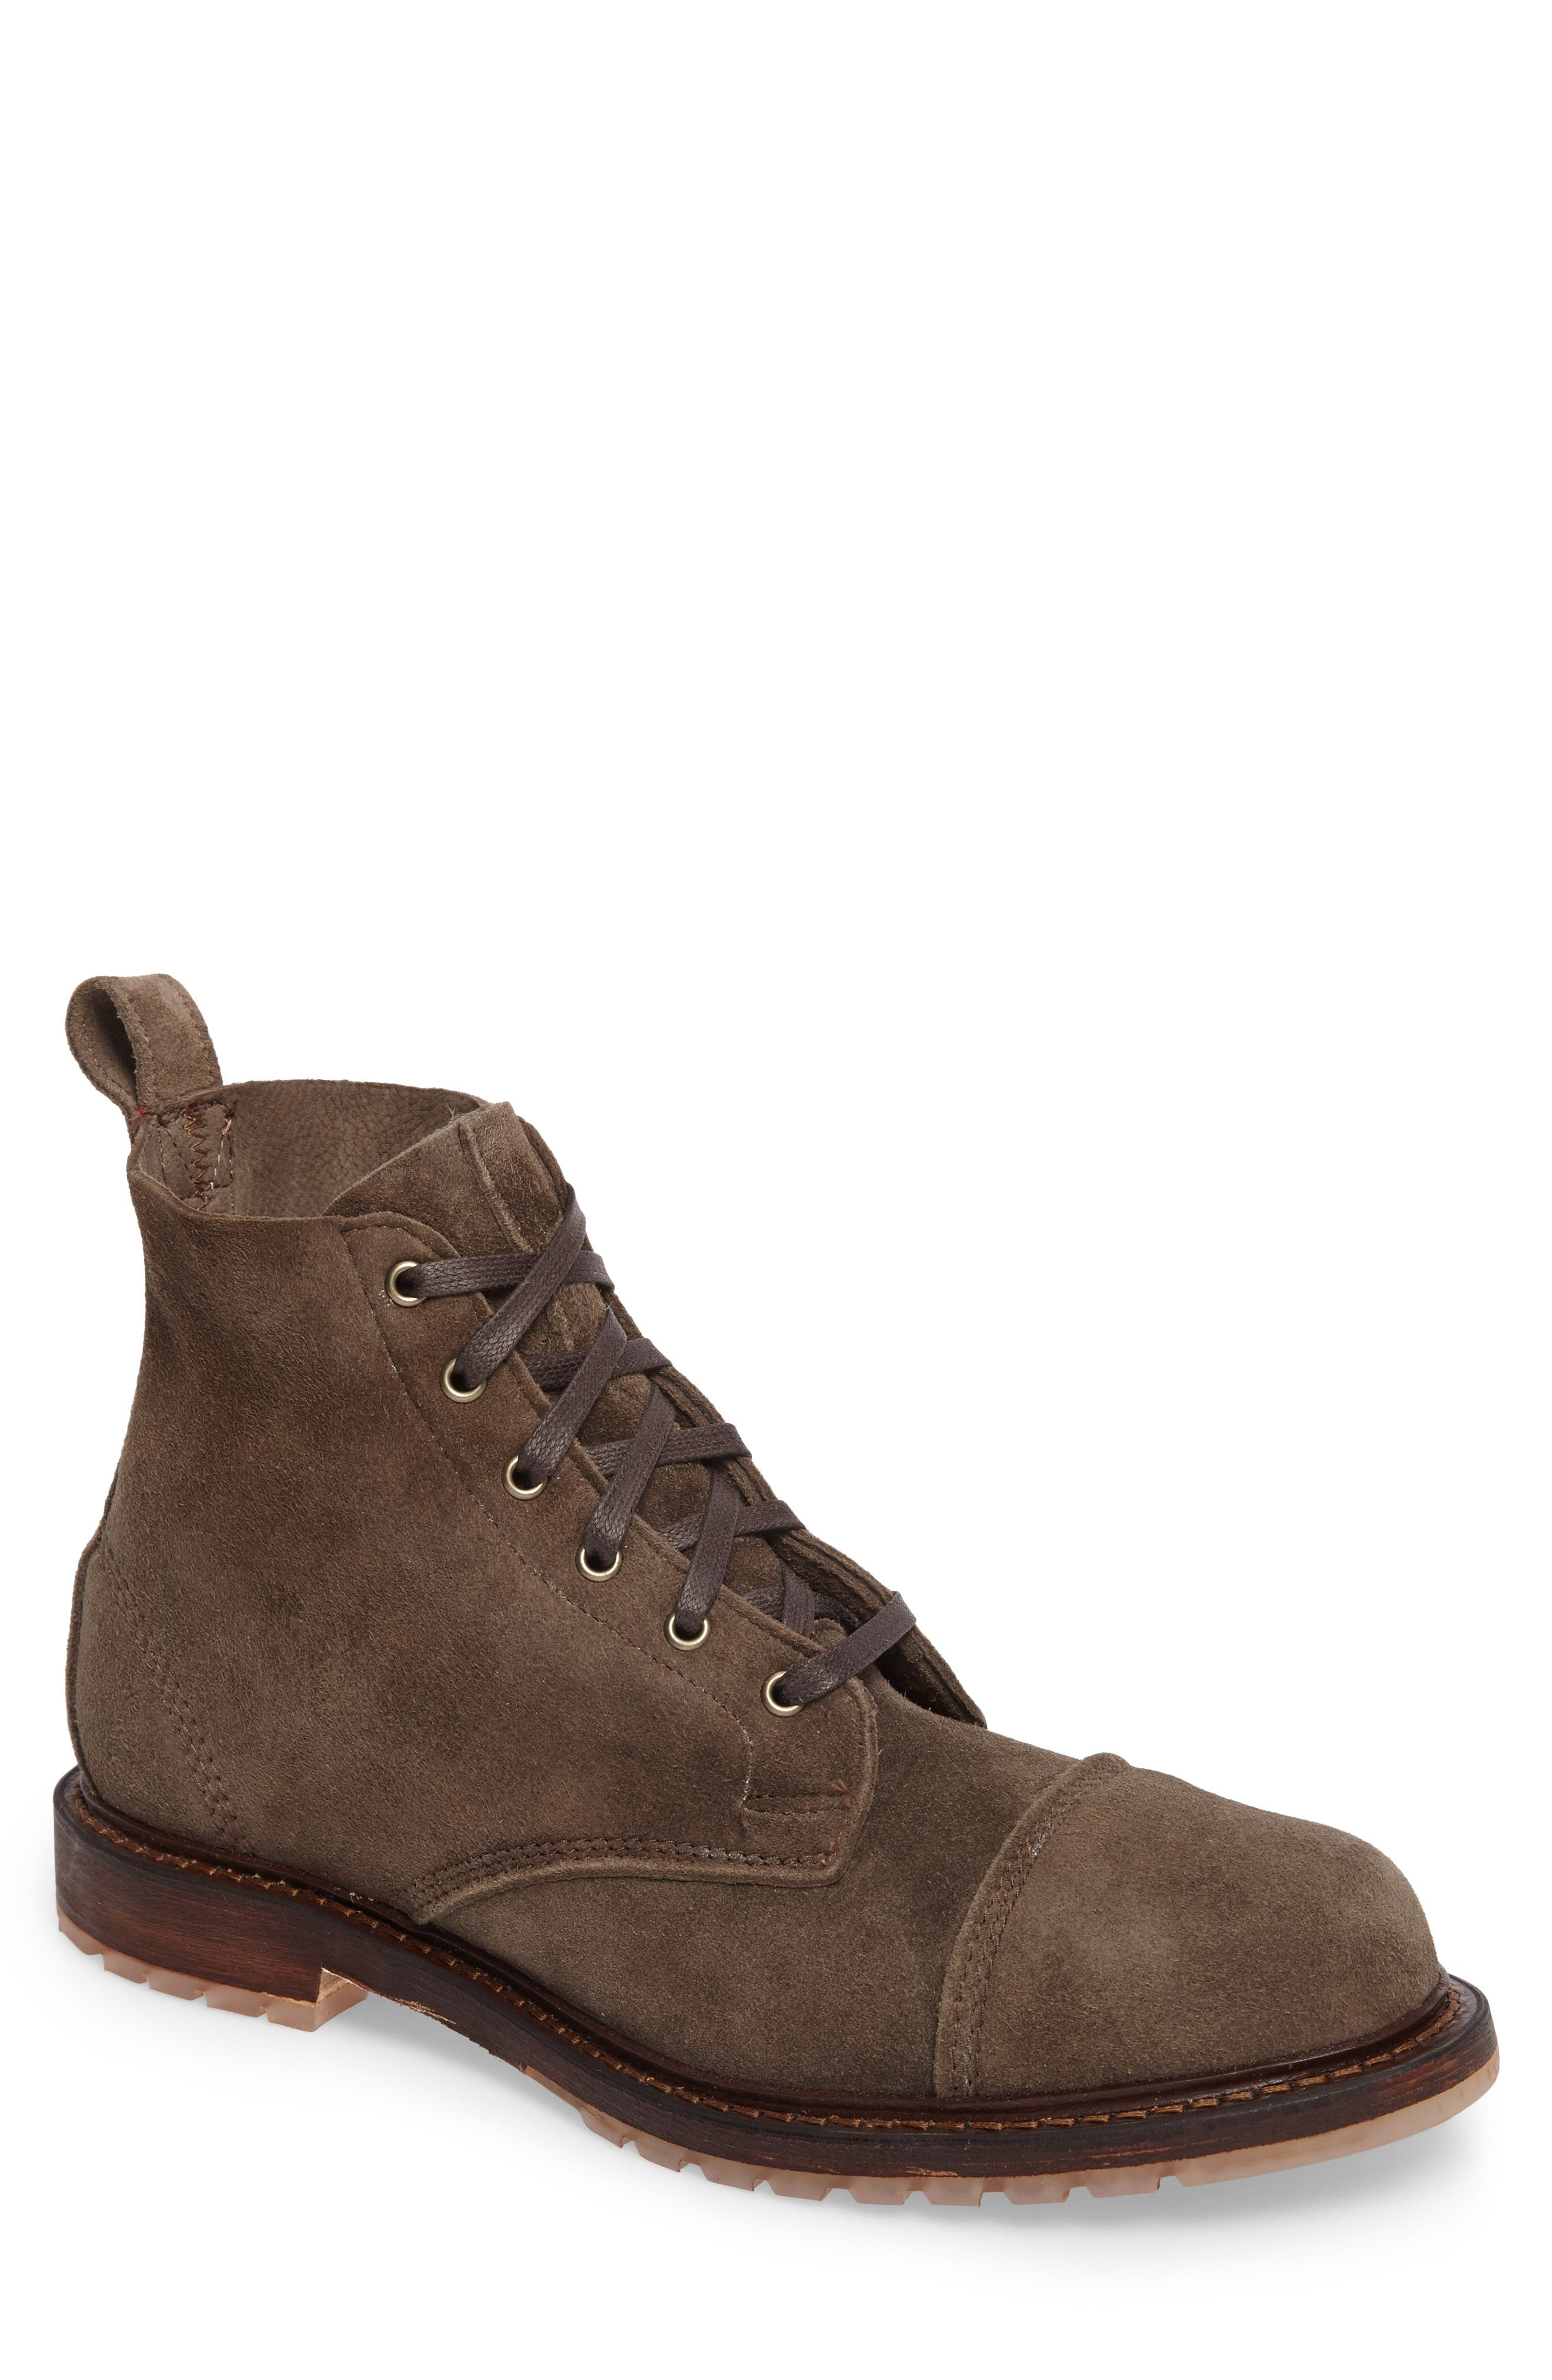 Caen Cap Toe Boot,                             Main thumbnail 1, color,                             Taupe Leather